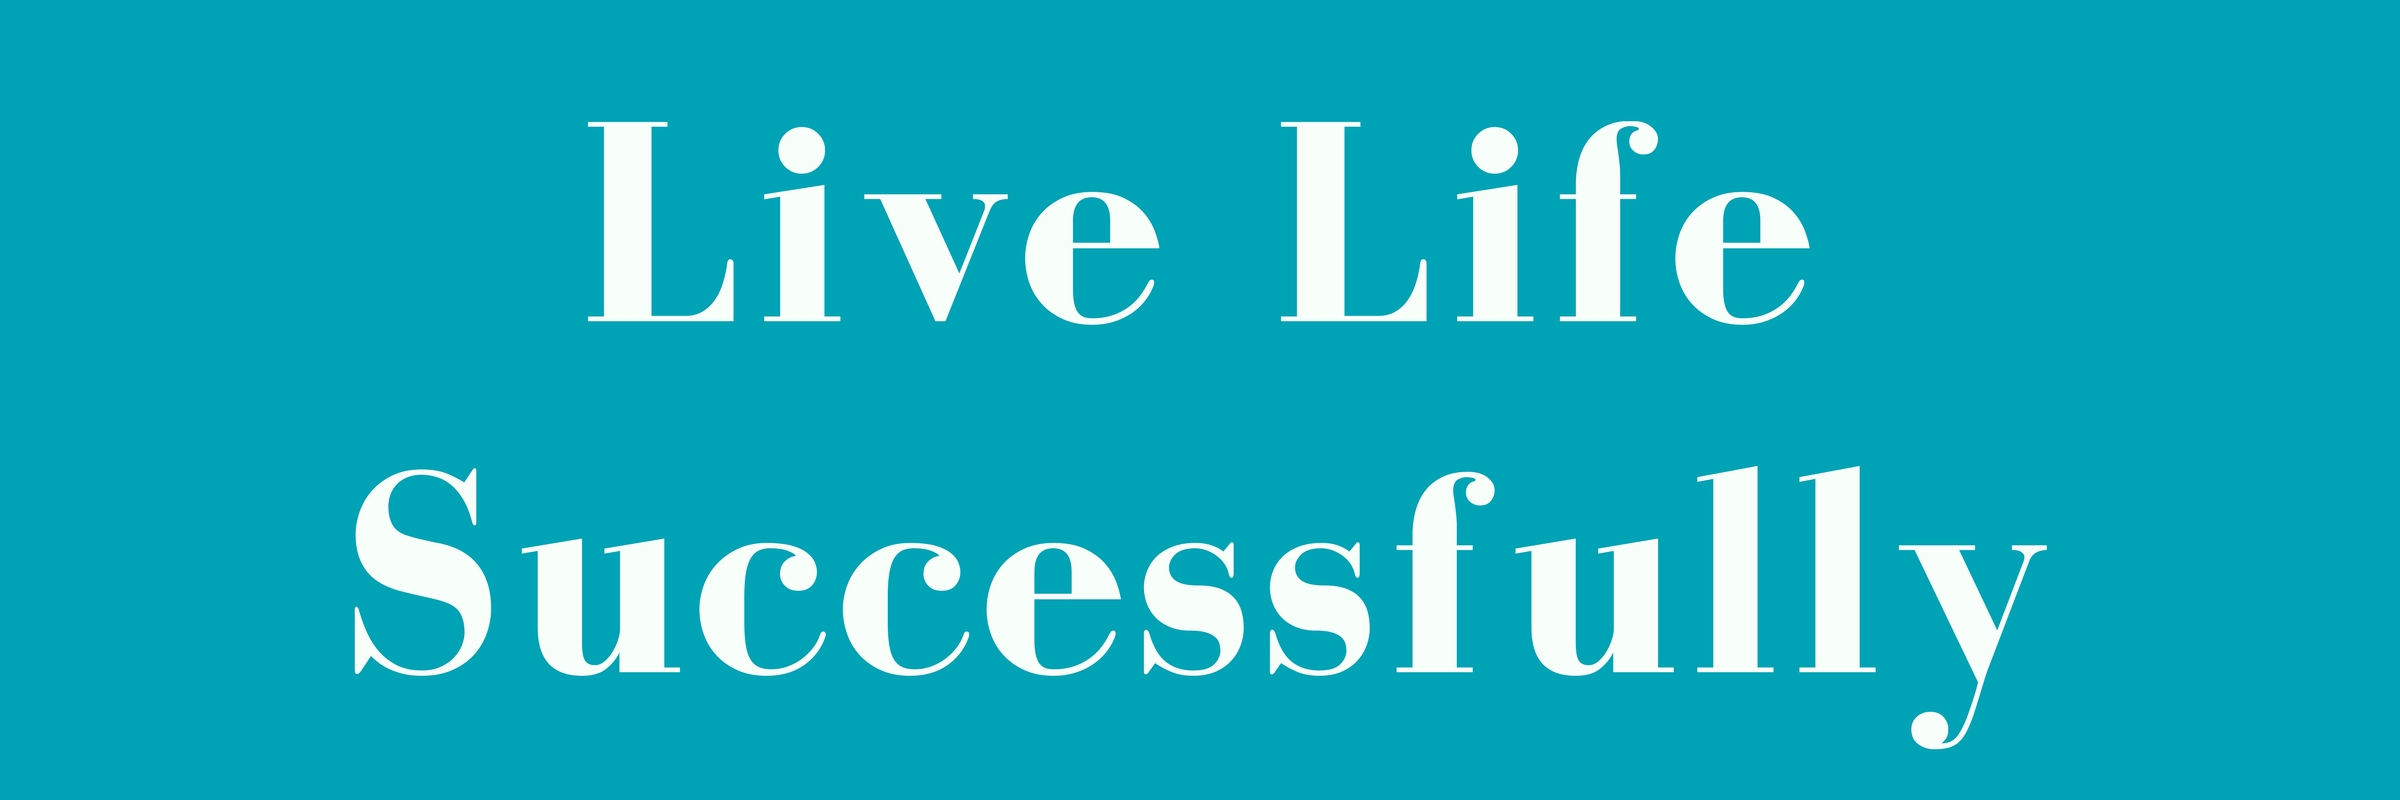 live-life-successfully-elegance